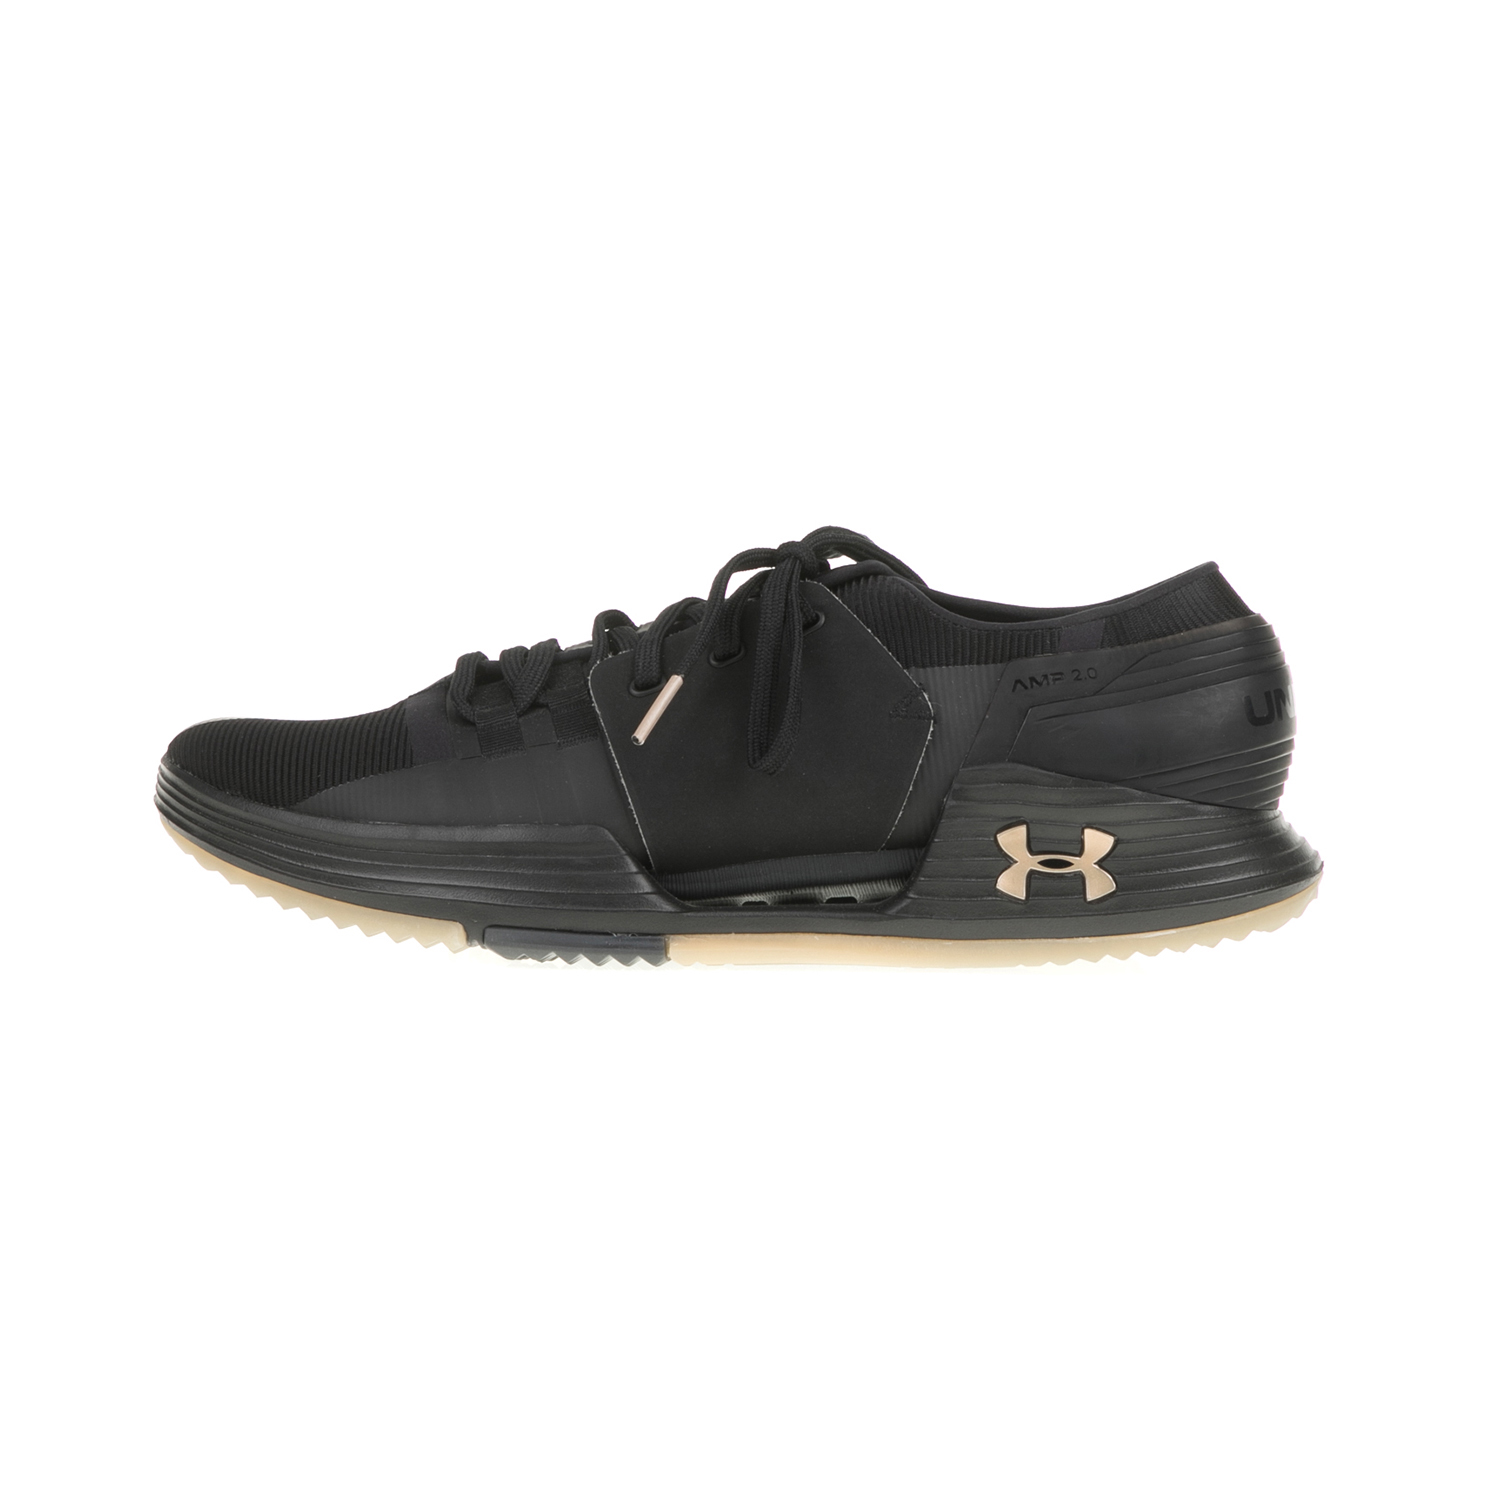 UNDER ARMOUR - Aνδρικά αθλητικά παπούτσια UNDER ARMOUR SPEEDFORM AMP 2.0 μαύρα ανδρικά παπούτσια αθλητικά training